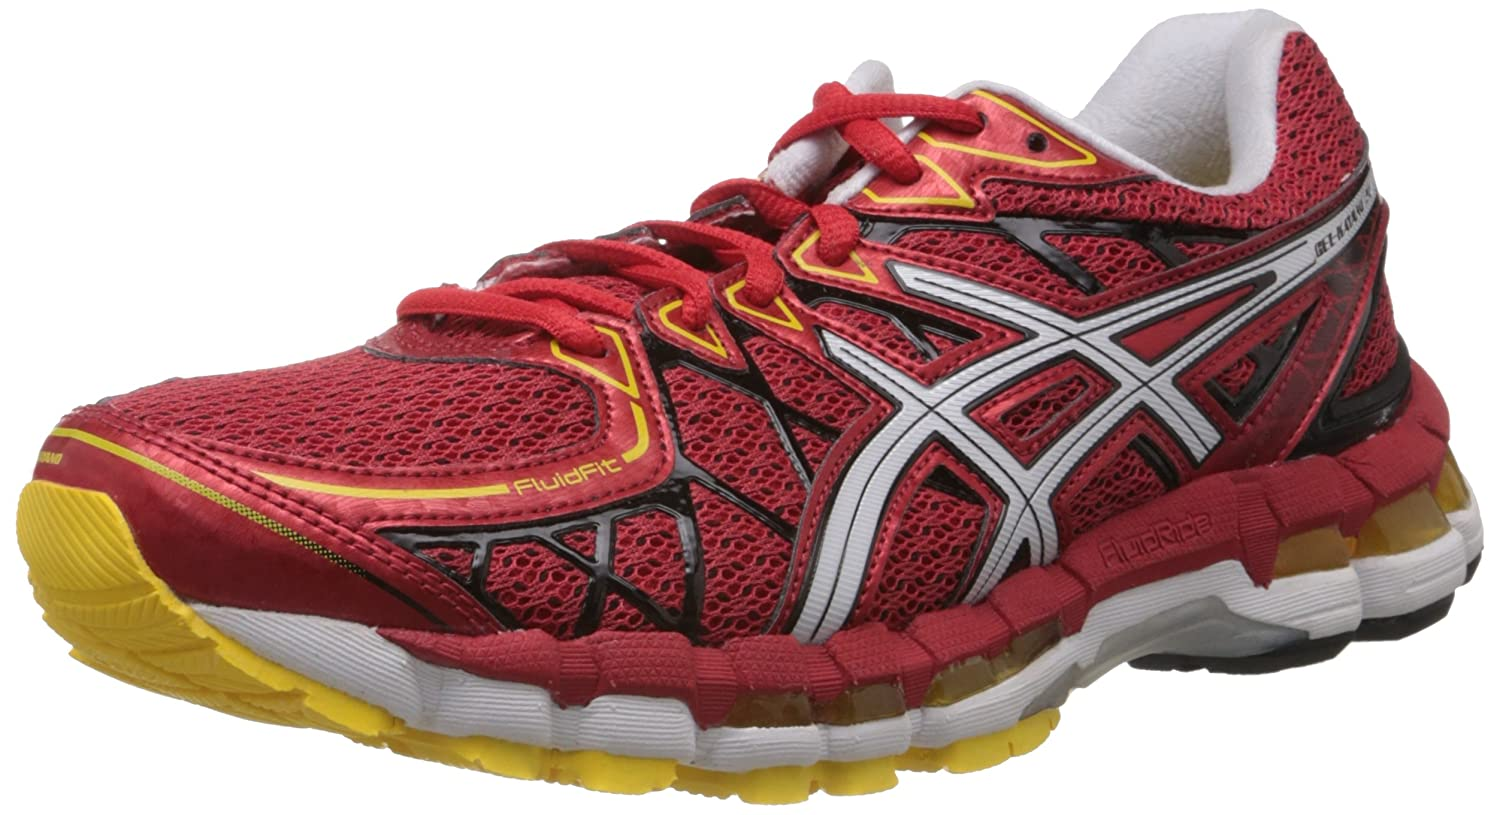 cheap for discount dc373 eb83a ASICS Men s Gel-Kayano 20 Red White and Yellow Mesh Running Shoes - 6 UK   Buy Online at Low Prices in India - Amazon.in